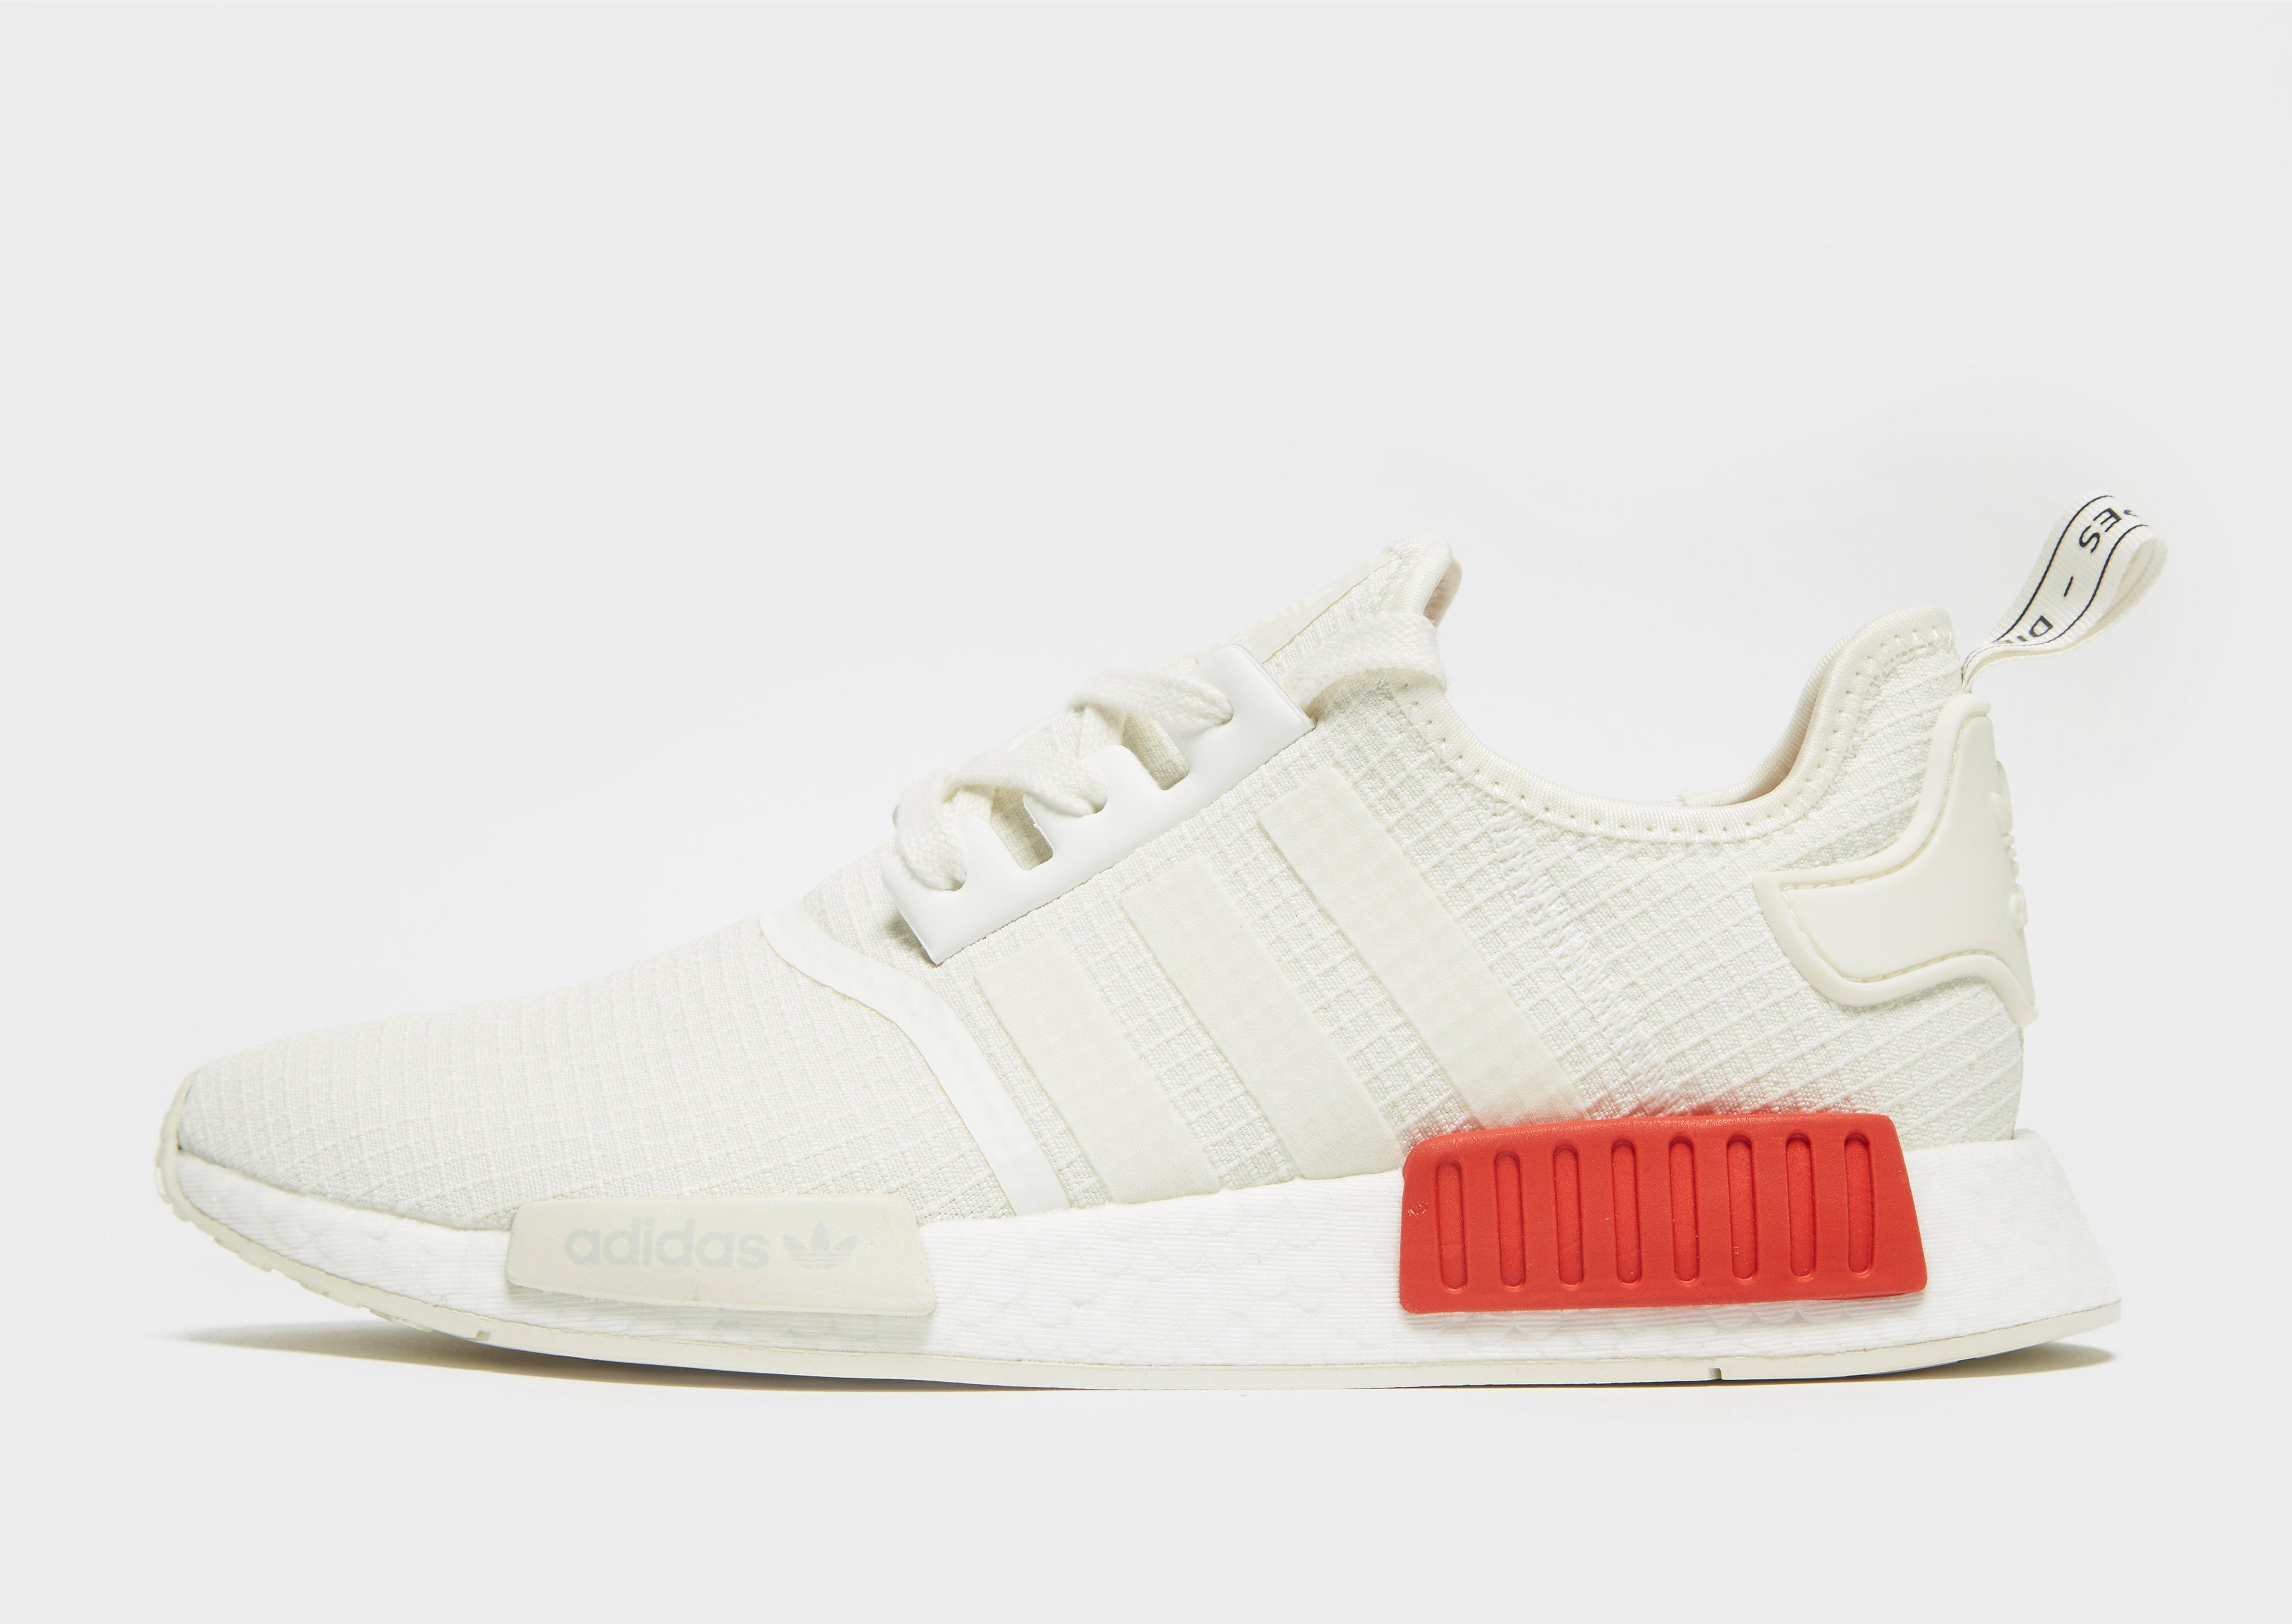 5d6c7a8e9cfa8 Adidas Originals Nmd R1 Ripstop in White for Men - Lyst